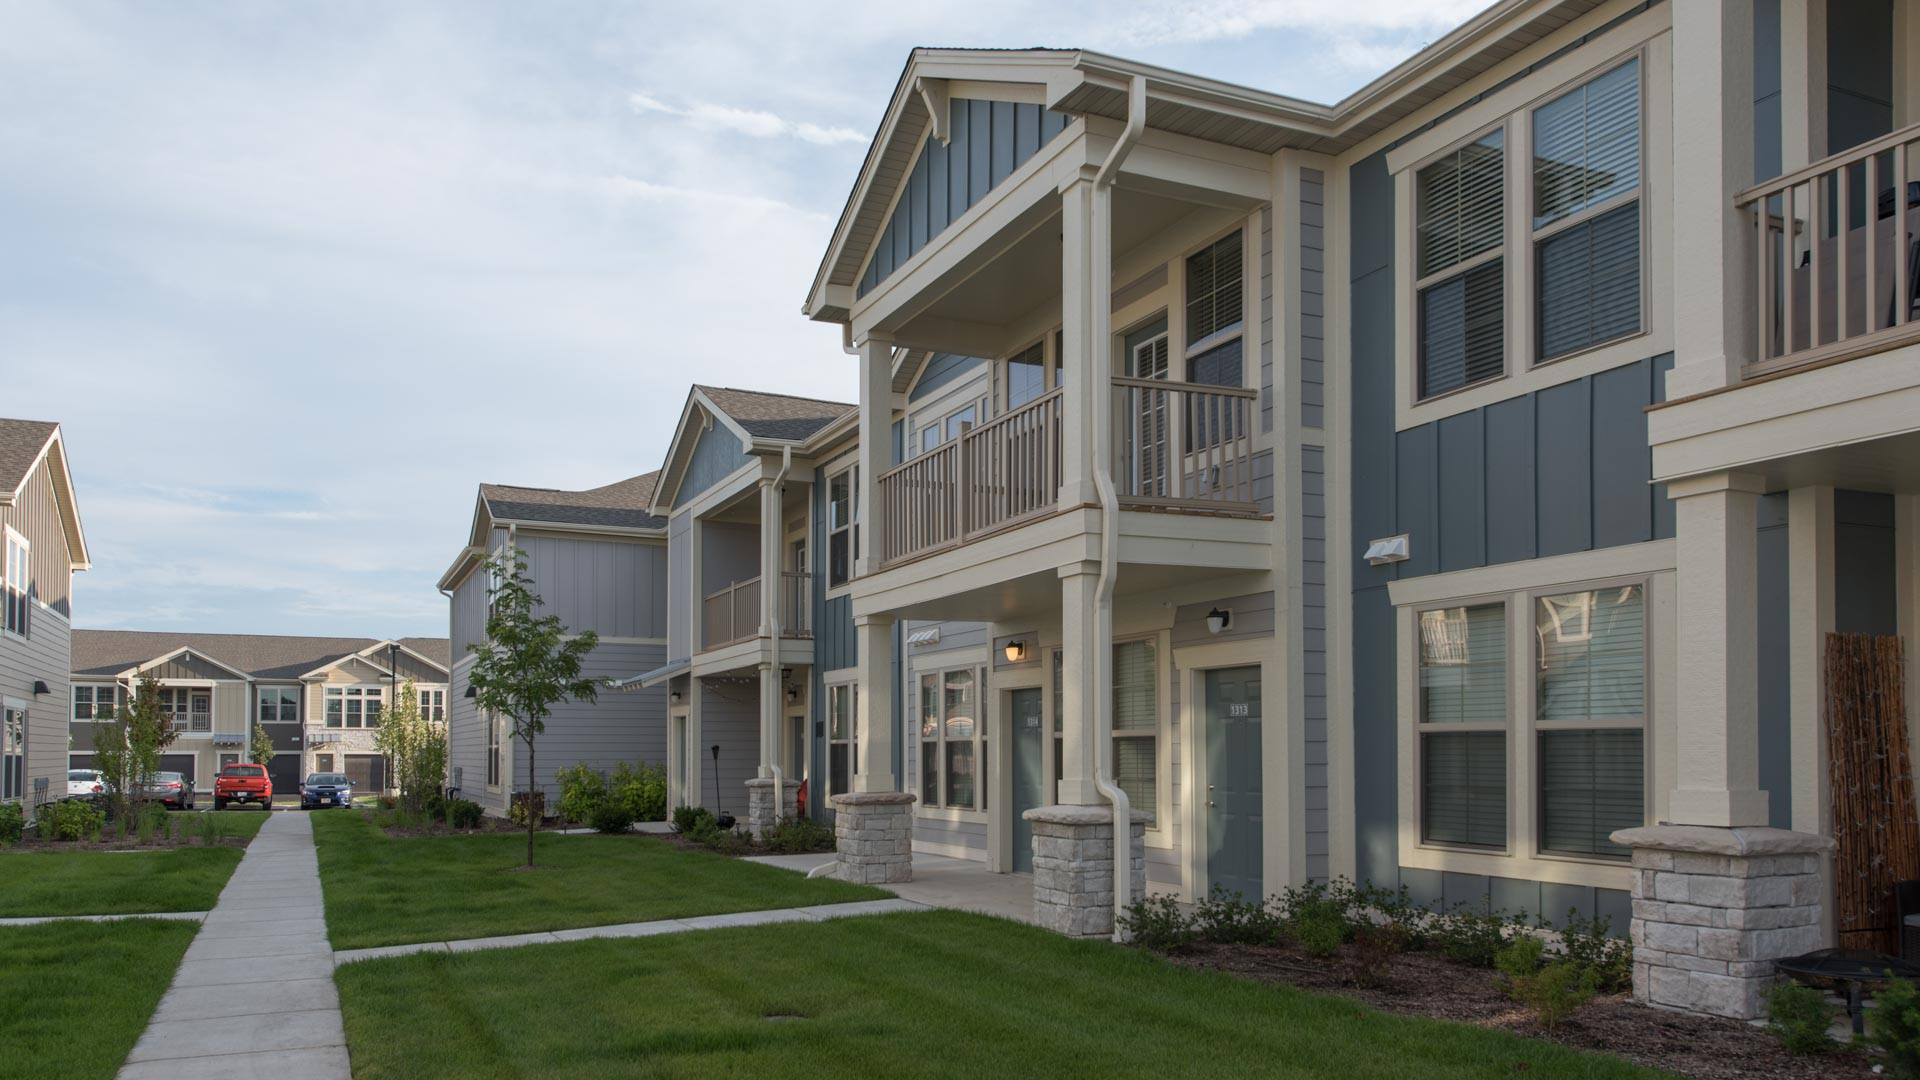 Well manicured lawns and townhome apartments at Springs at Kenosha apartments in Kenosha WI